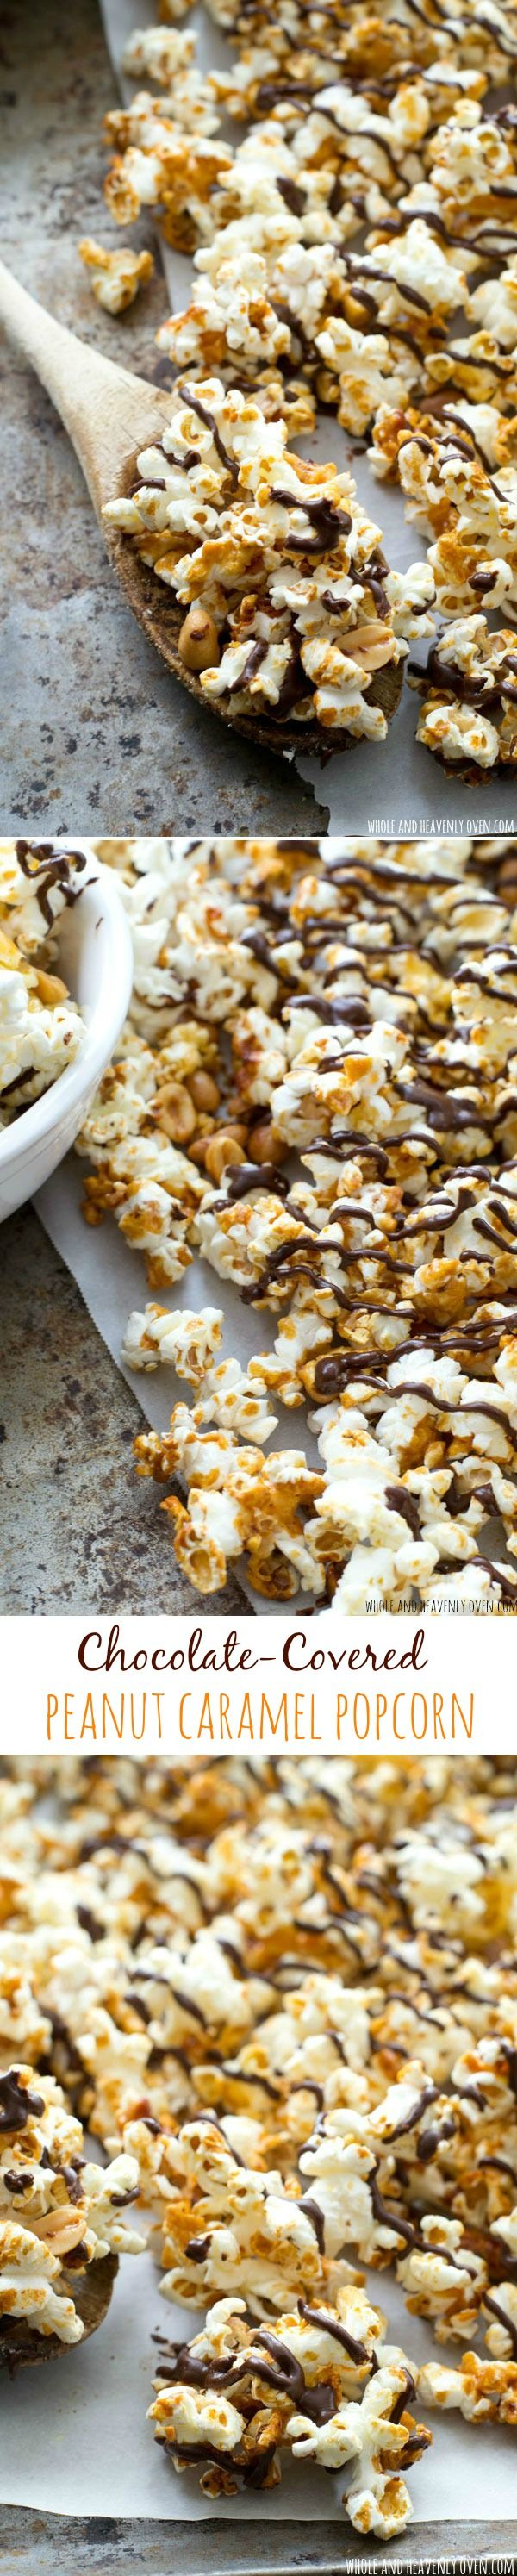 17 Best Ideas About Chocolate Covered Popcorn On Pinterest